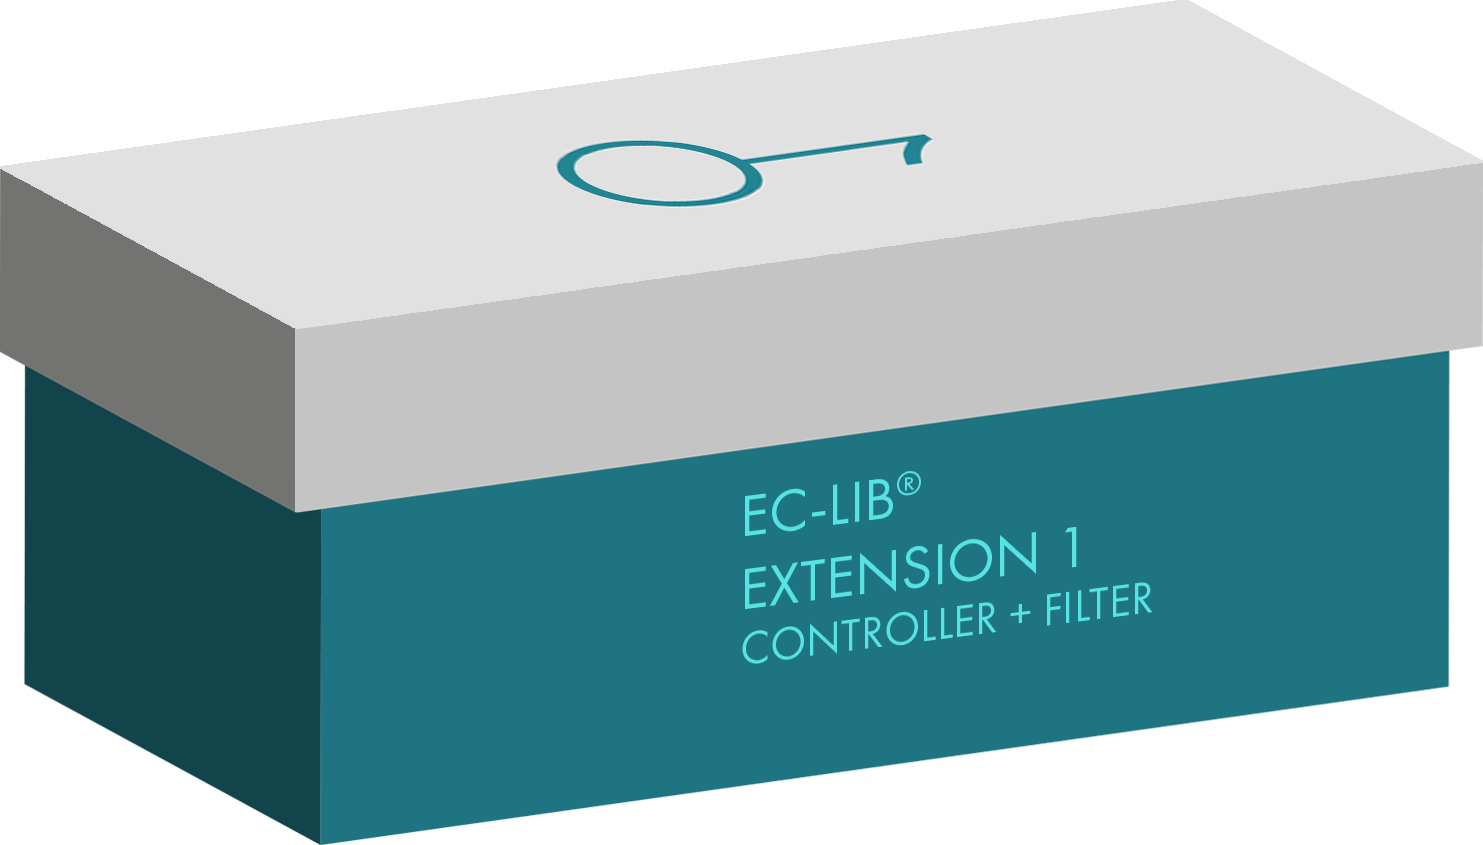 EC-LIB® Fixed Point Library Extension 1 Controller Filter